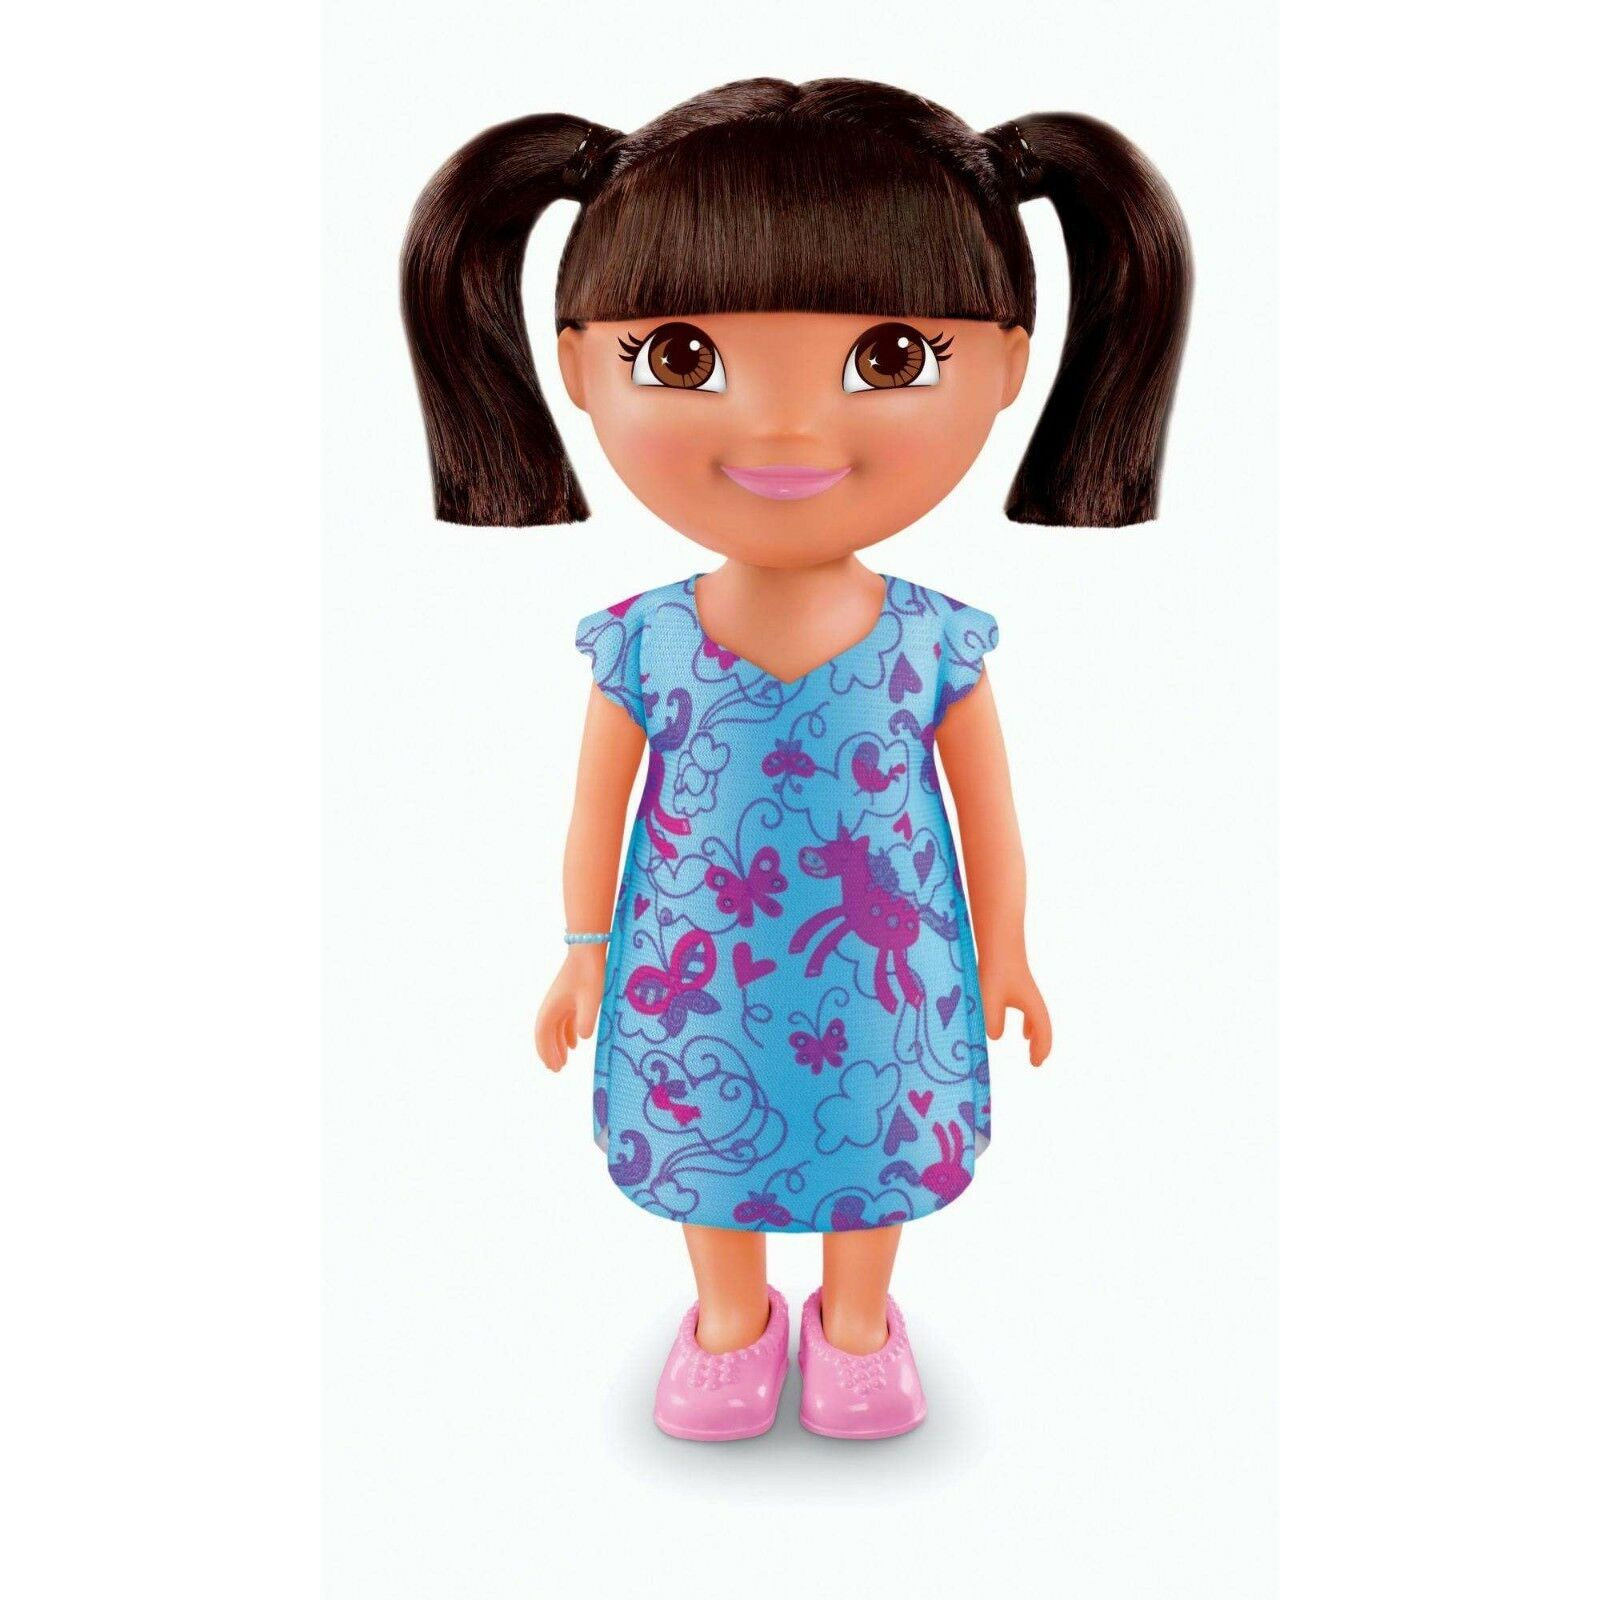 Nickelodeon Dora The Explorer Everyday Adventures Slumber Fiesta Dora Muñeca 9